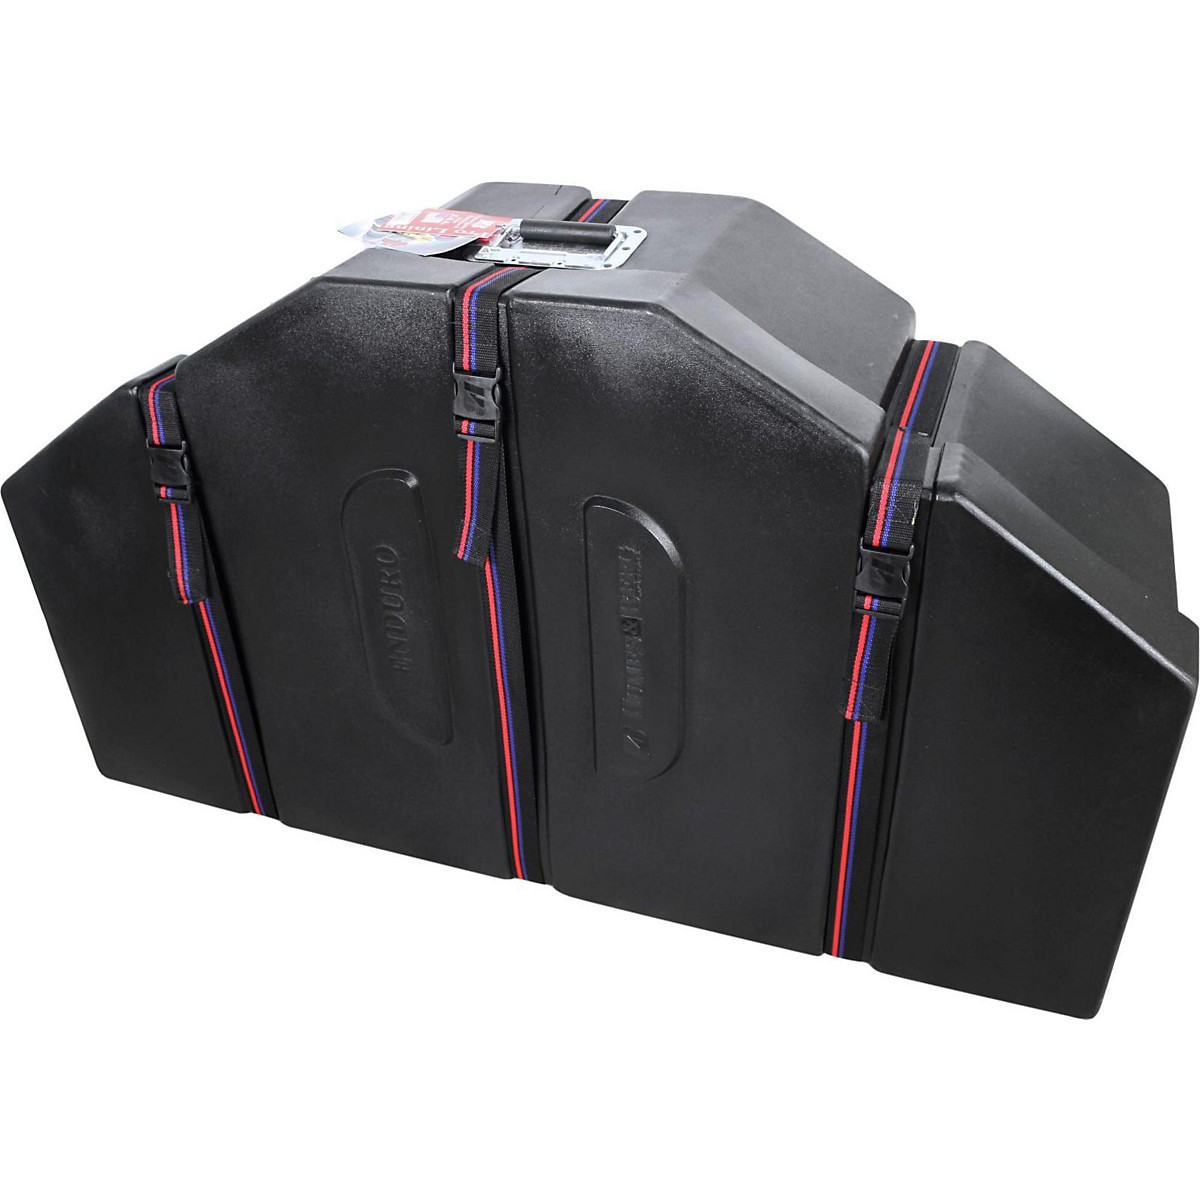 Humes & Berg Enduro Marching Tom Cases